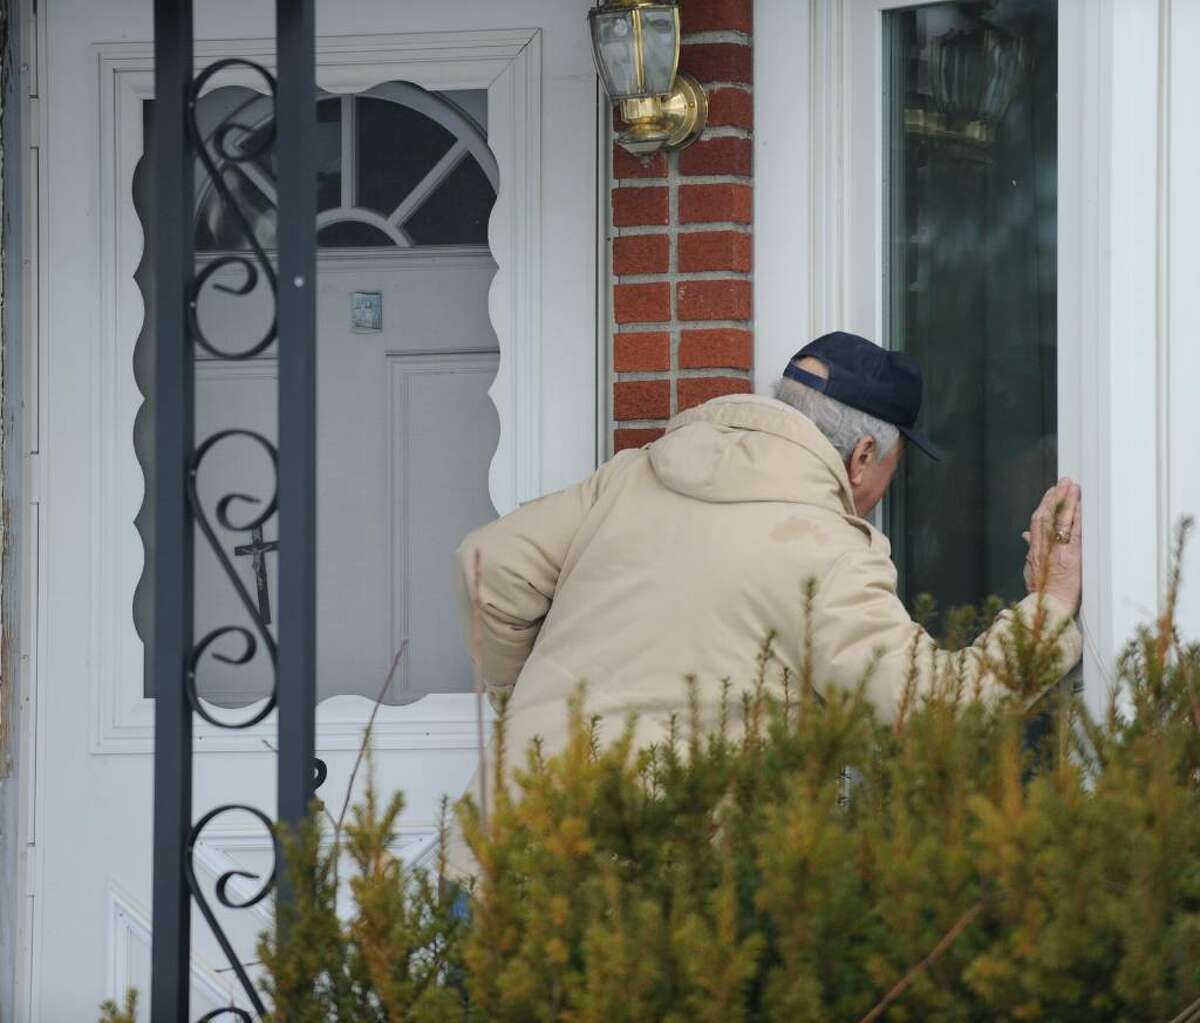 Jim Roti Roti looks in the window of 20 Industrial Park Road in Troy looking for his cousin Louis Pisaniello, 82, an Alzheimer's patient moments before the city marshal called for his eviction Dec. 10. (Skip Dickstein / Times Union)